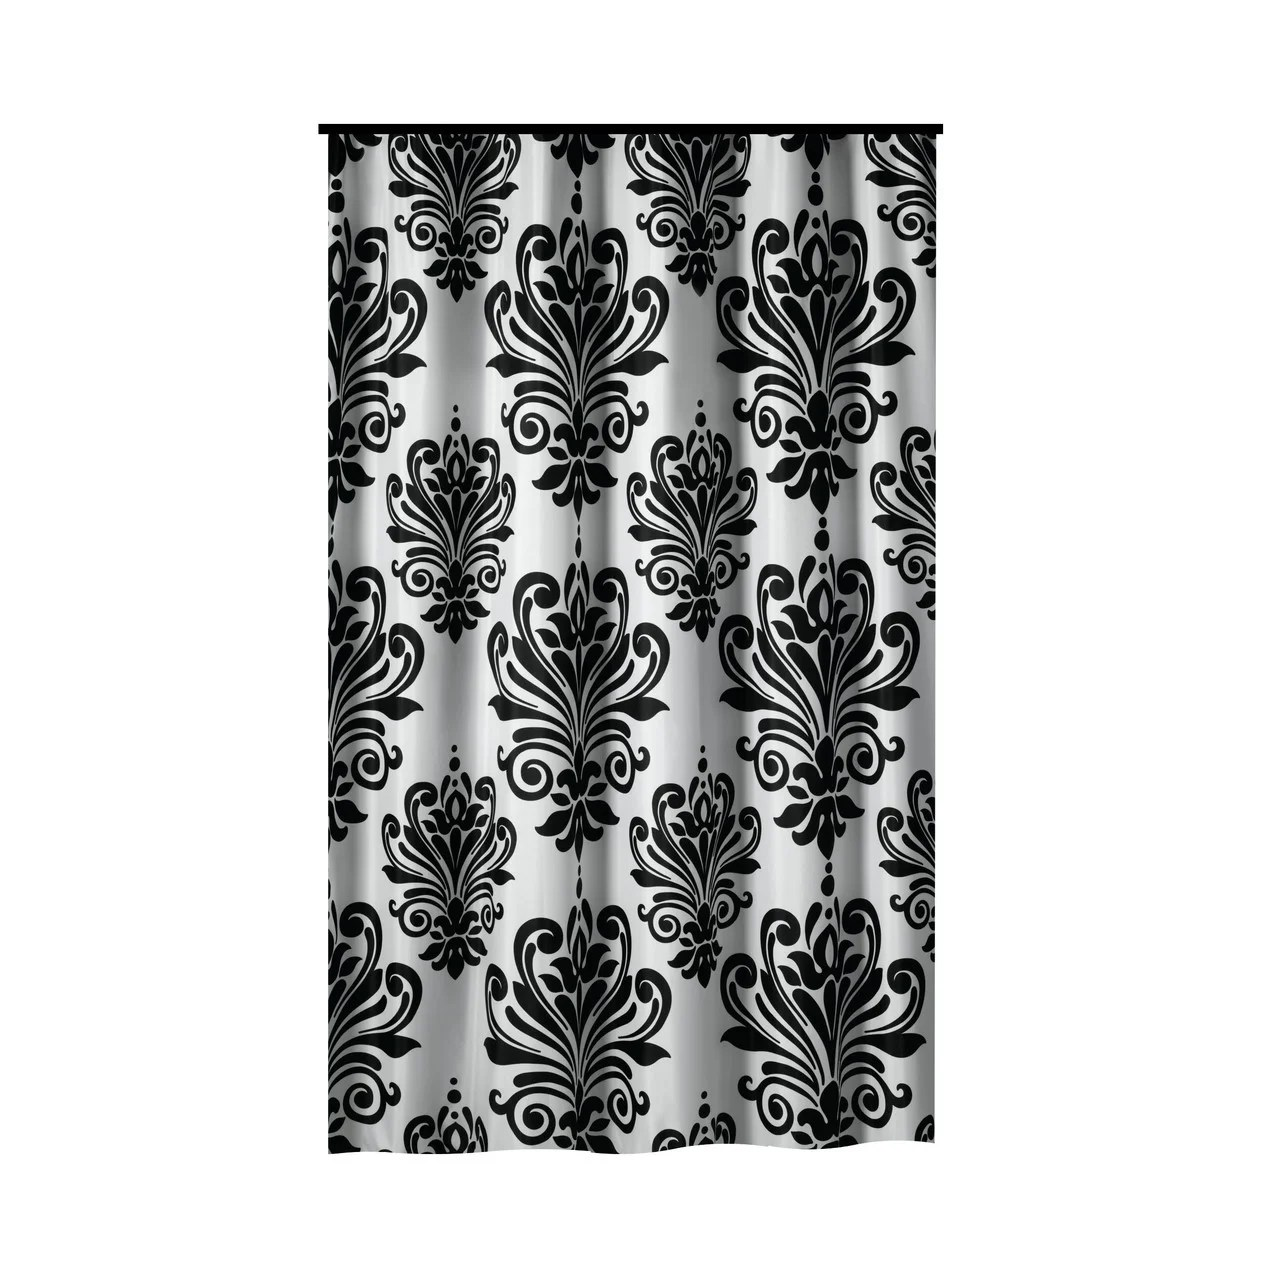 gamma extra long shower curtain 78 x 72 inch black and white baroque fabric